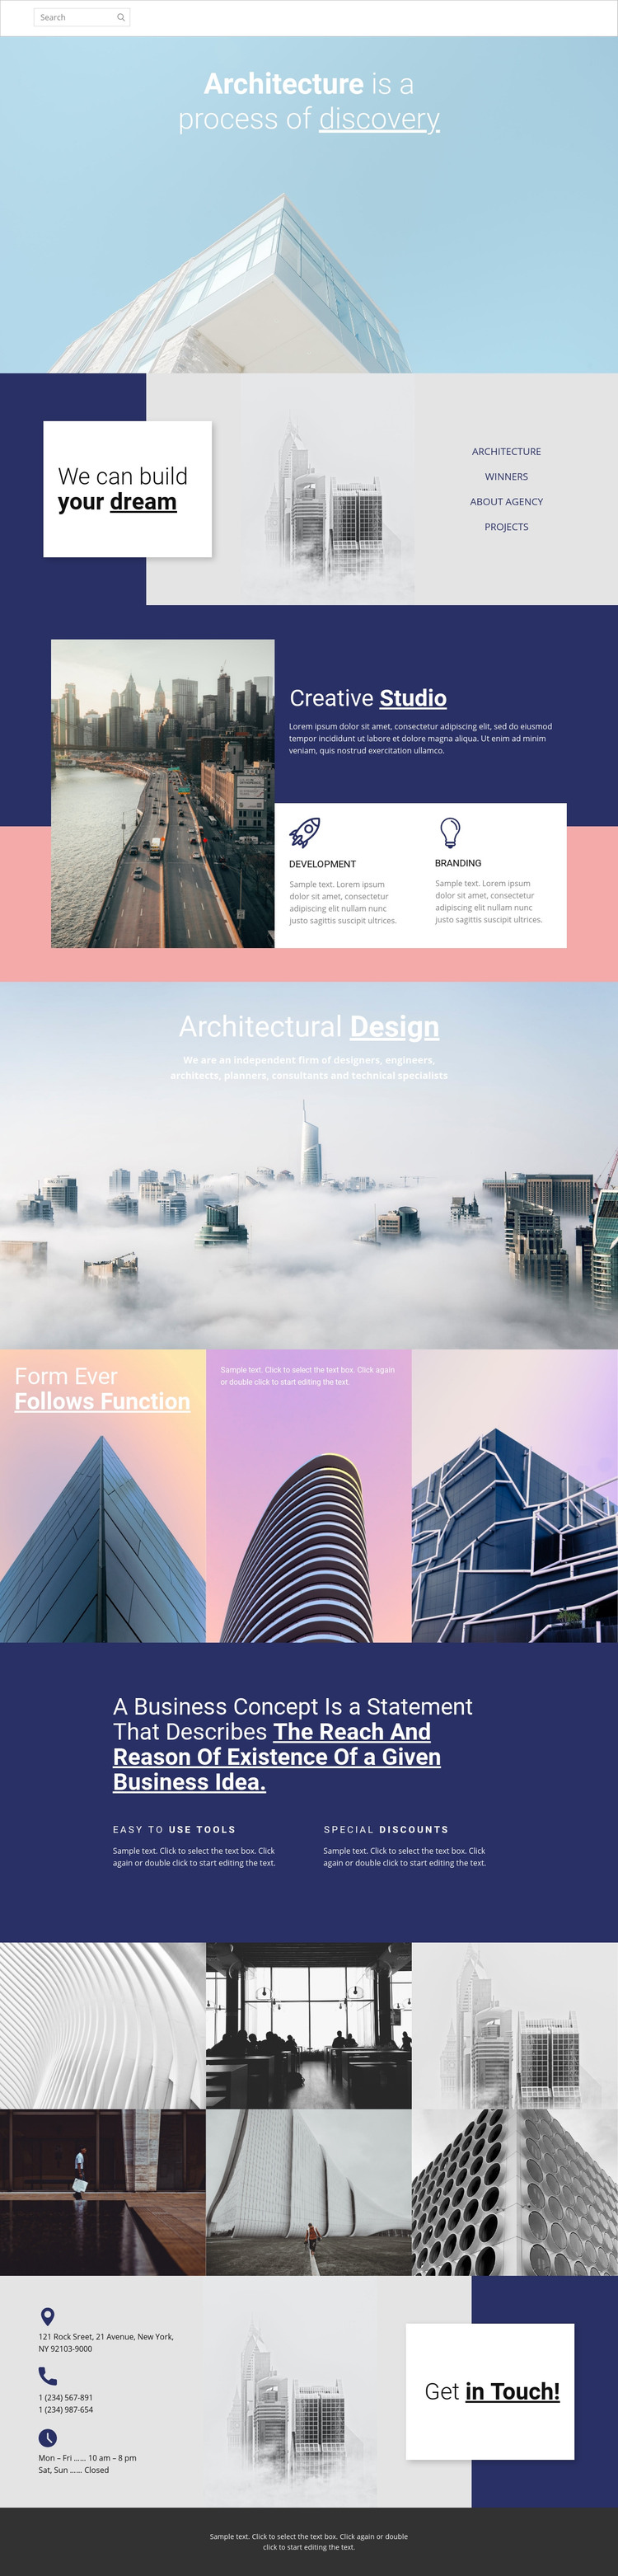 Wonders of architecture Homepage Design